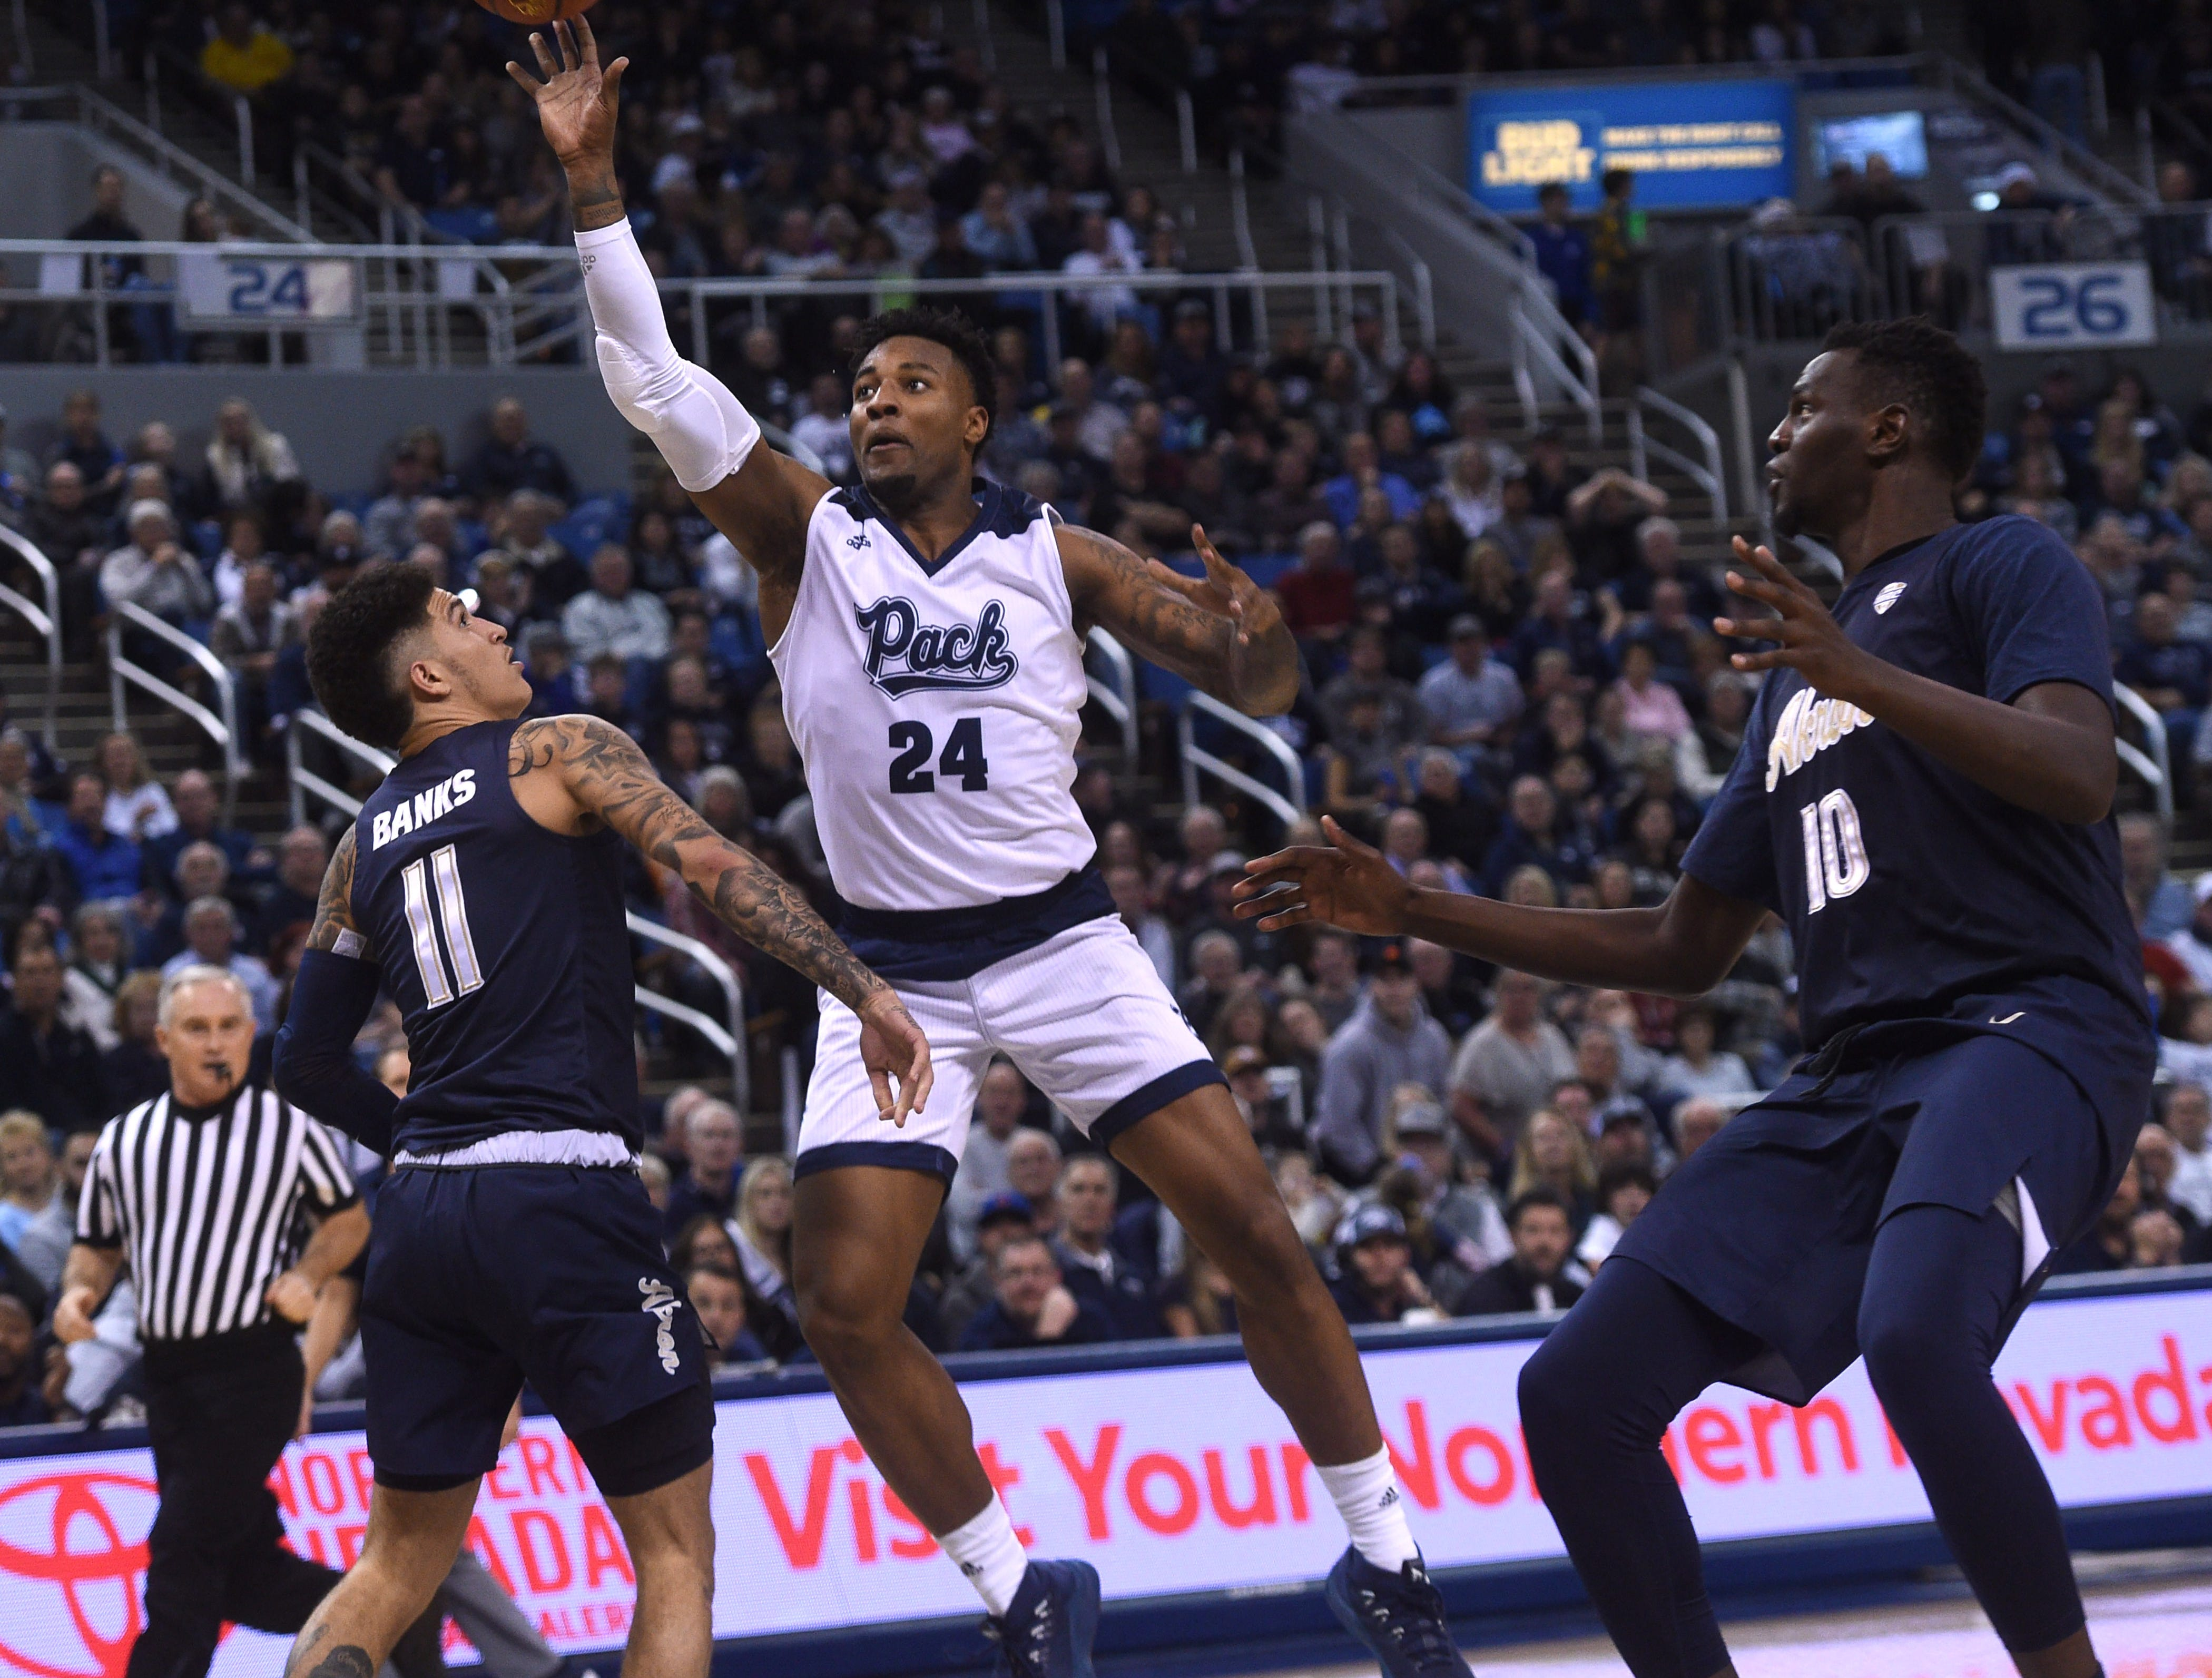 Nevada's Jordan Caroline (24) shoots while taking on Akron during their basketball game at Lawlor Events Center in Reno on Dec. 22, 2018.